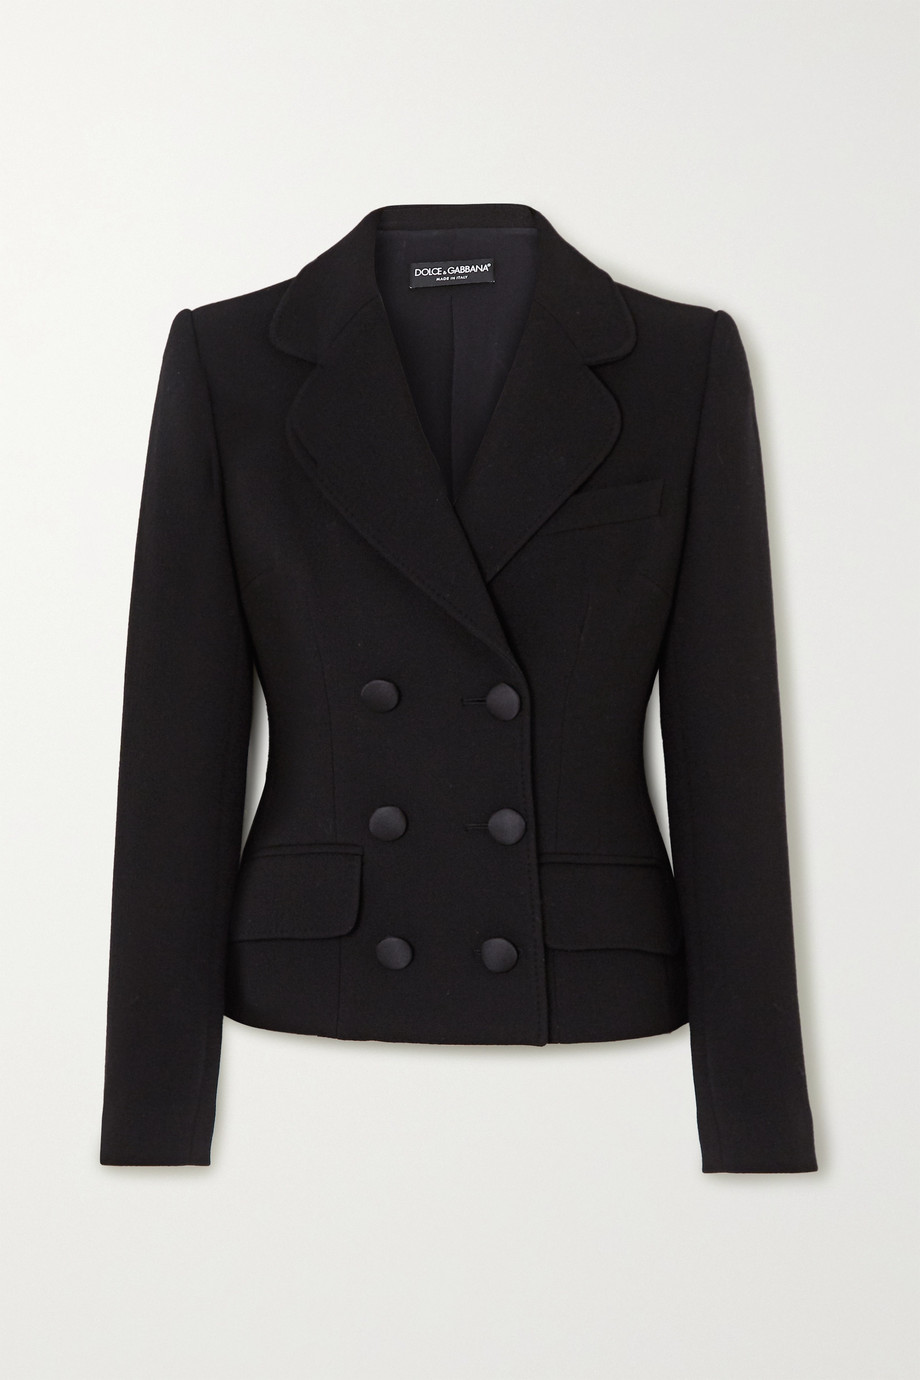 Dolce & Gabbana Double-breasted wool-blend crepe blazer